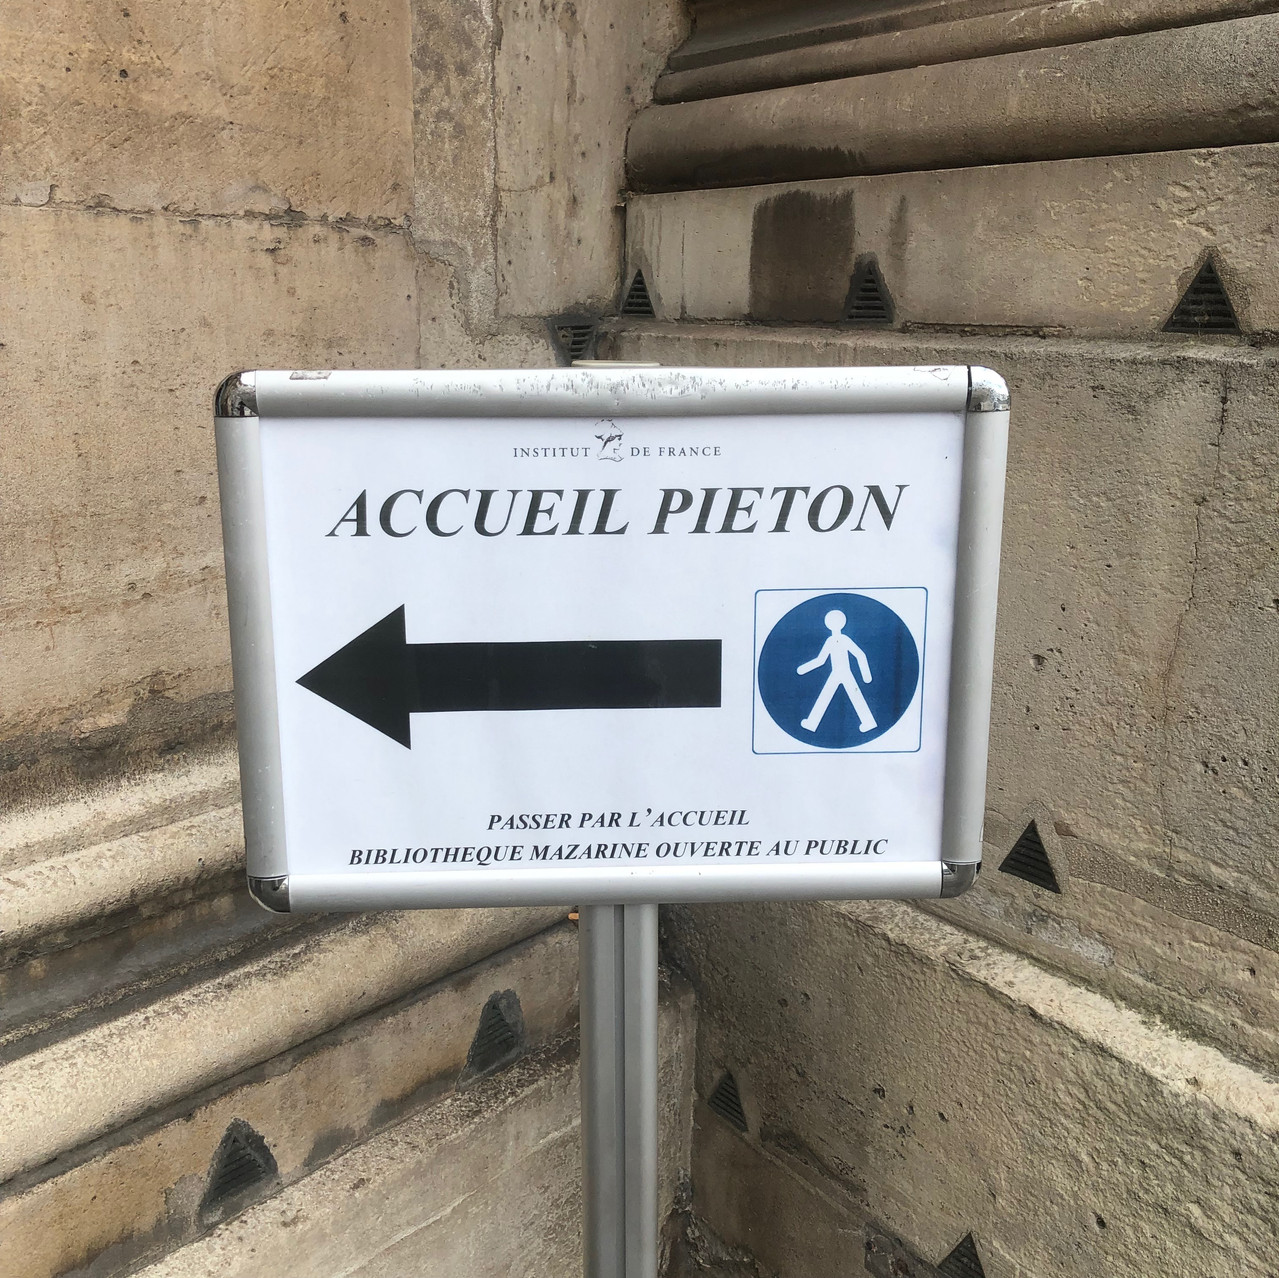 Direction for library visitors